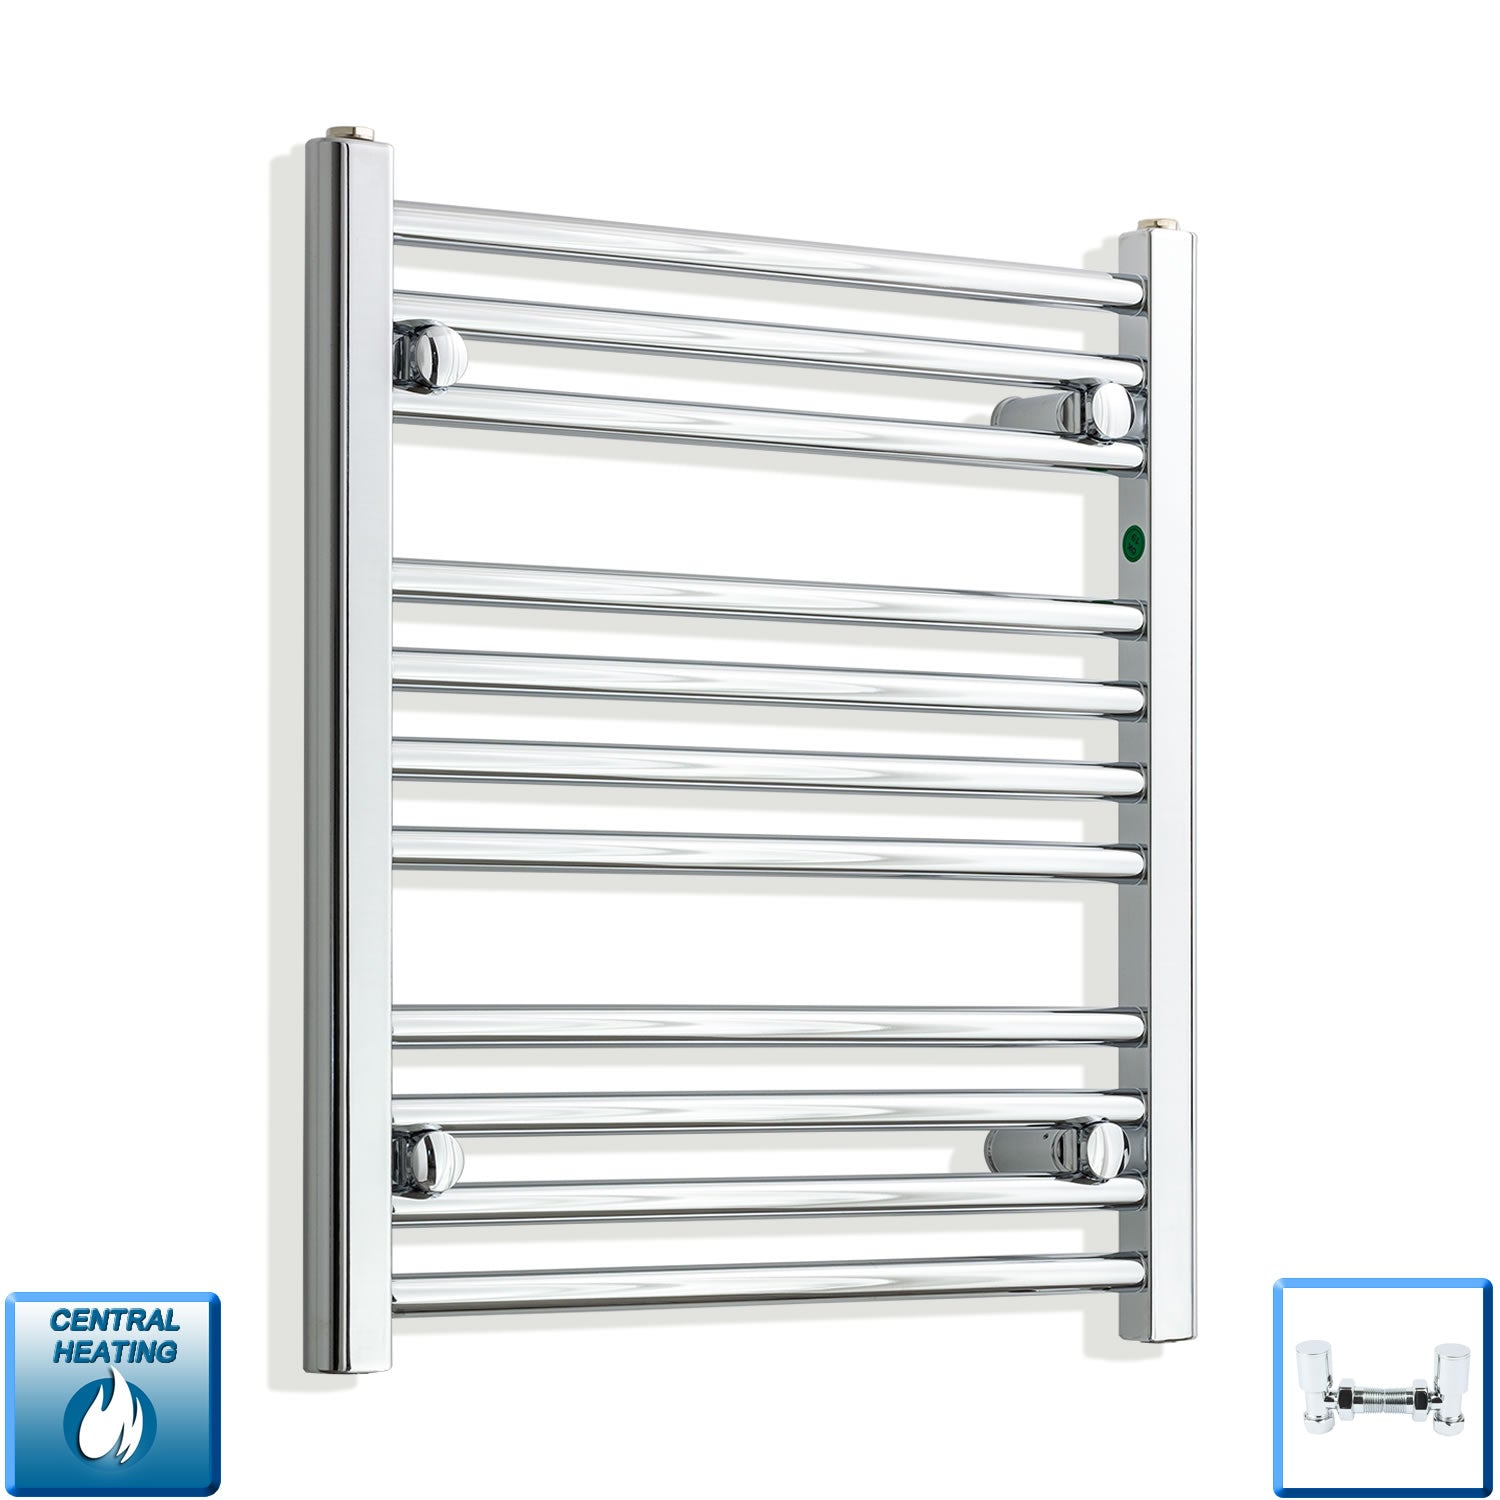 550mm Wide 600mm High Straight Chrome Heated Towel Rail Radiator HTR Central Heating,With Angled Valve